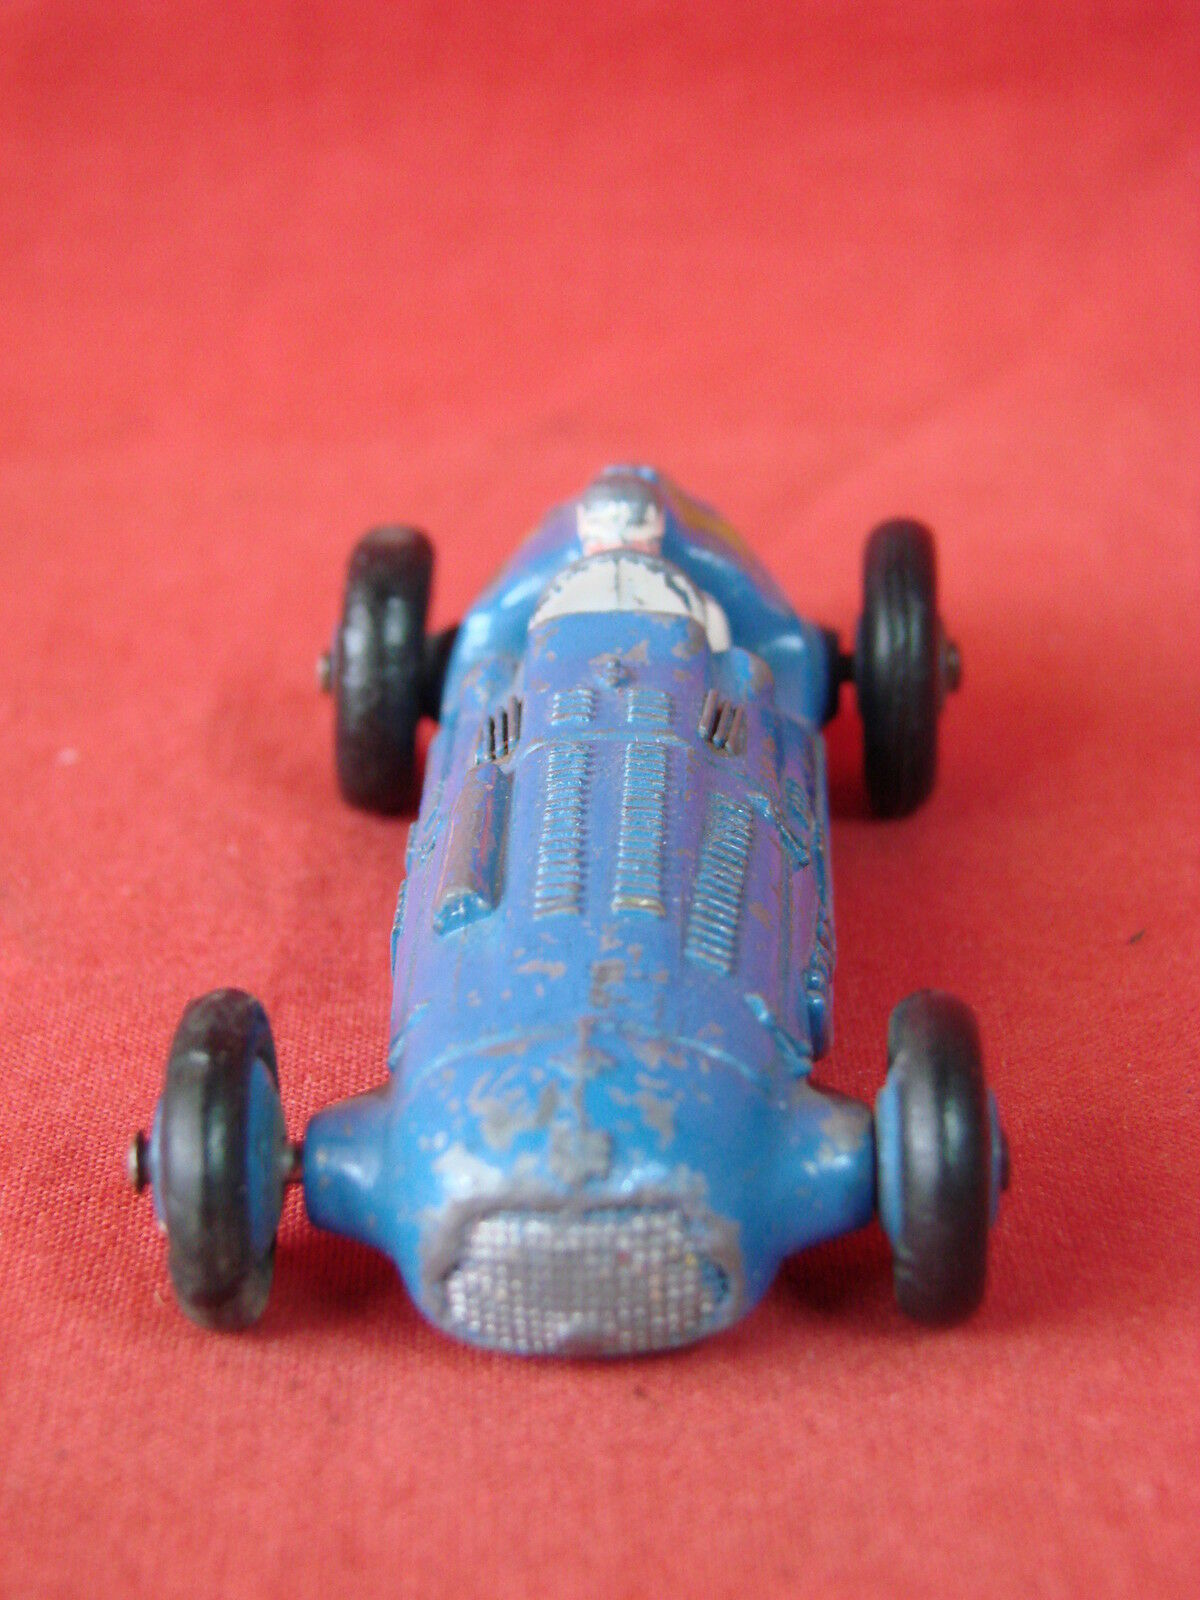 DINKY TOYS TALBO LAGO Ref 23 h h h   JOUET ANCIEN MECCANO 6badd1